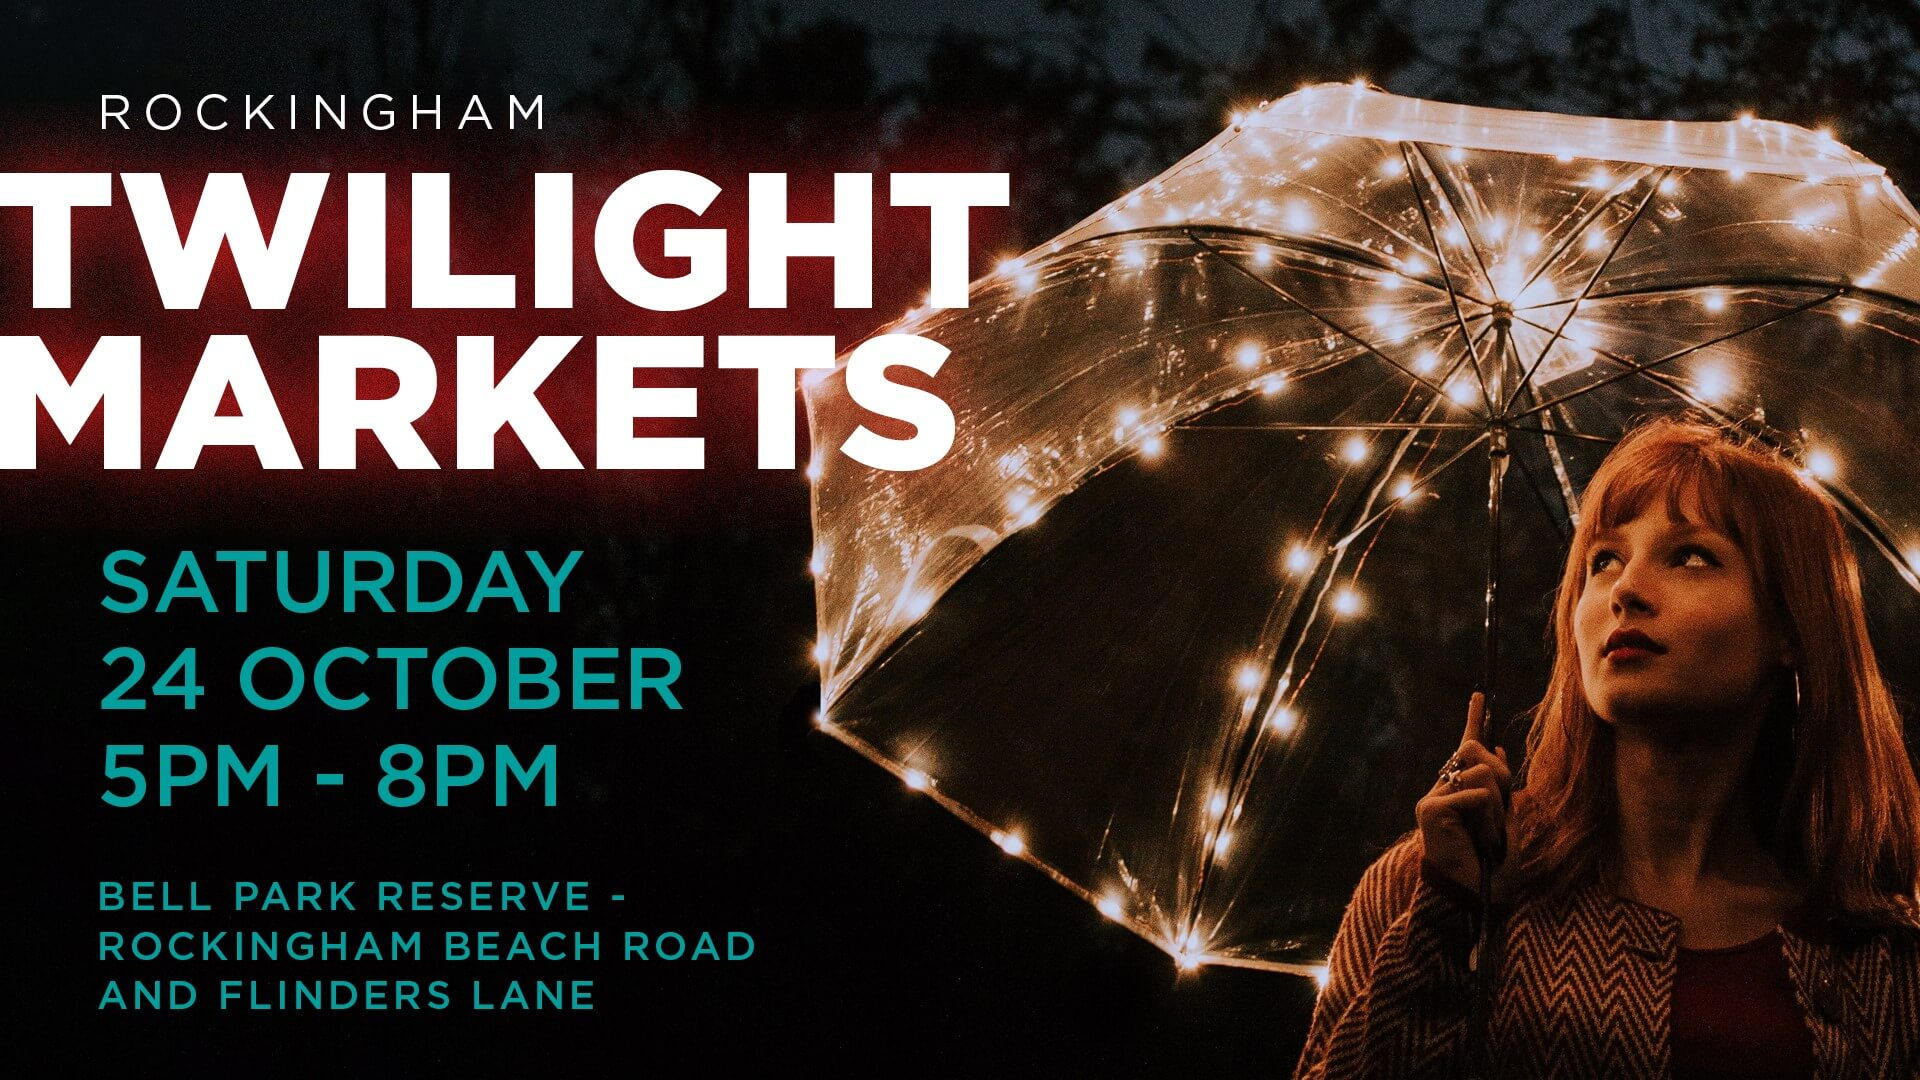 Rockingham Spring Twilight Markets